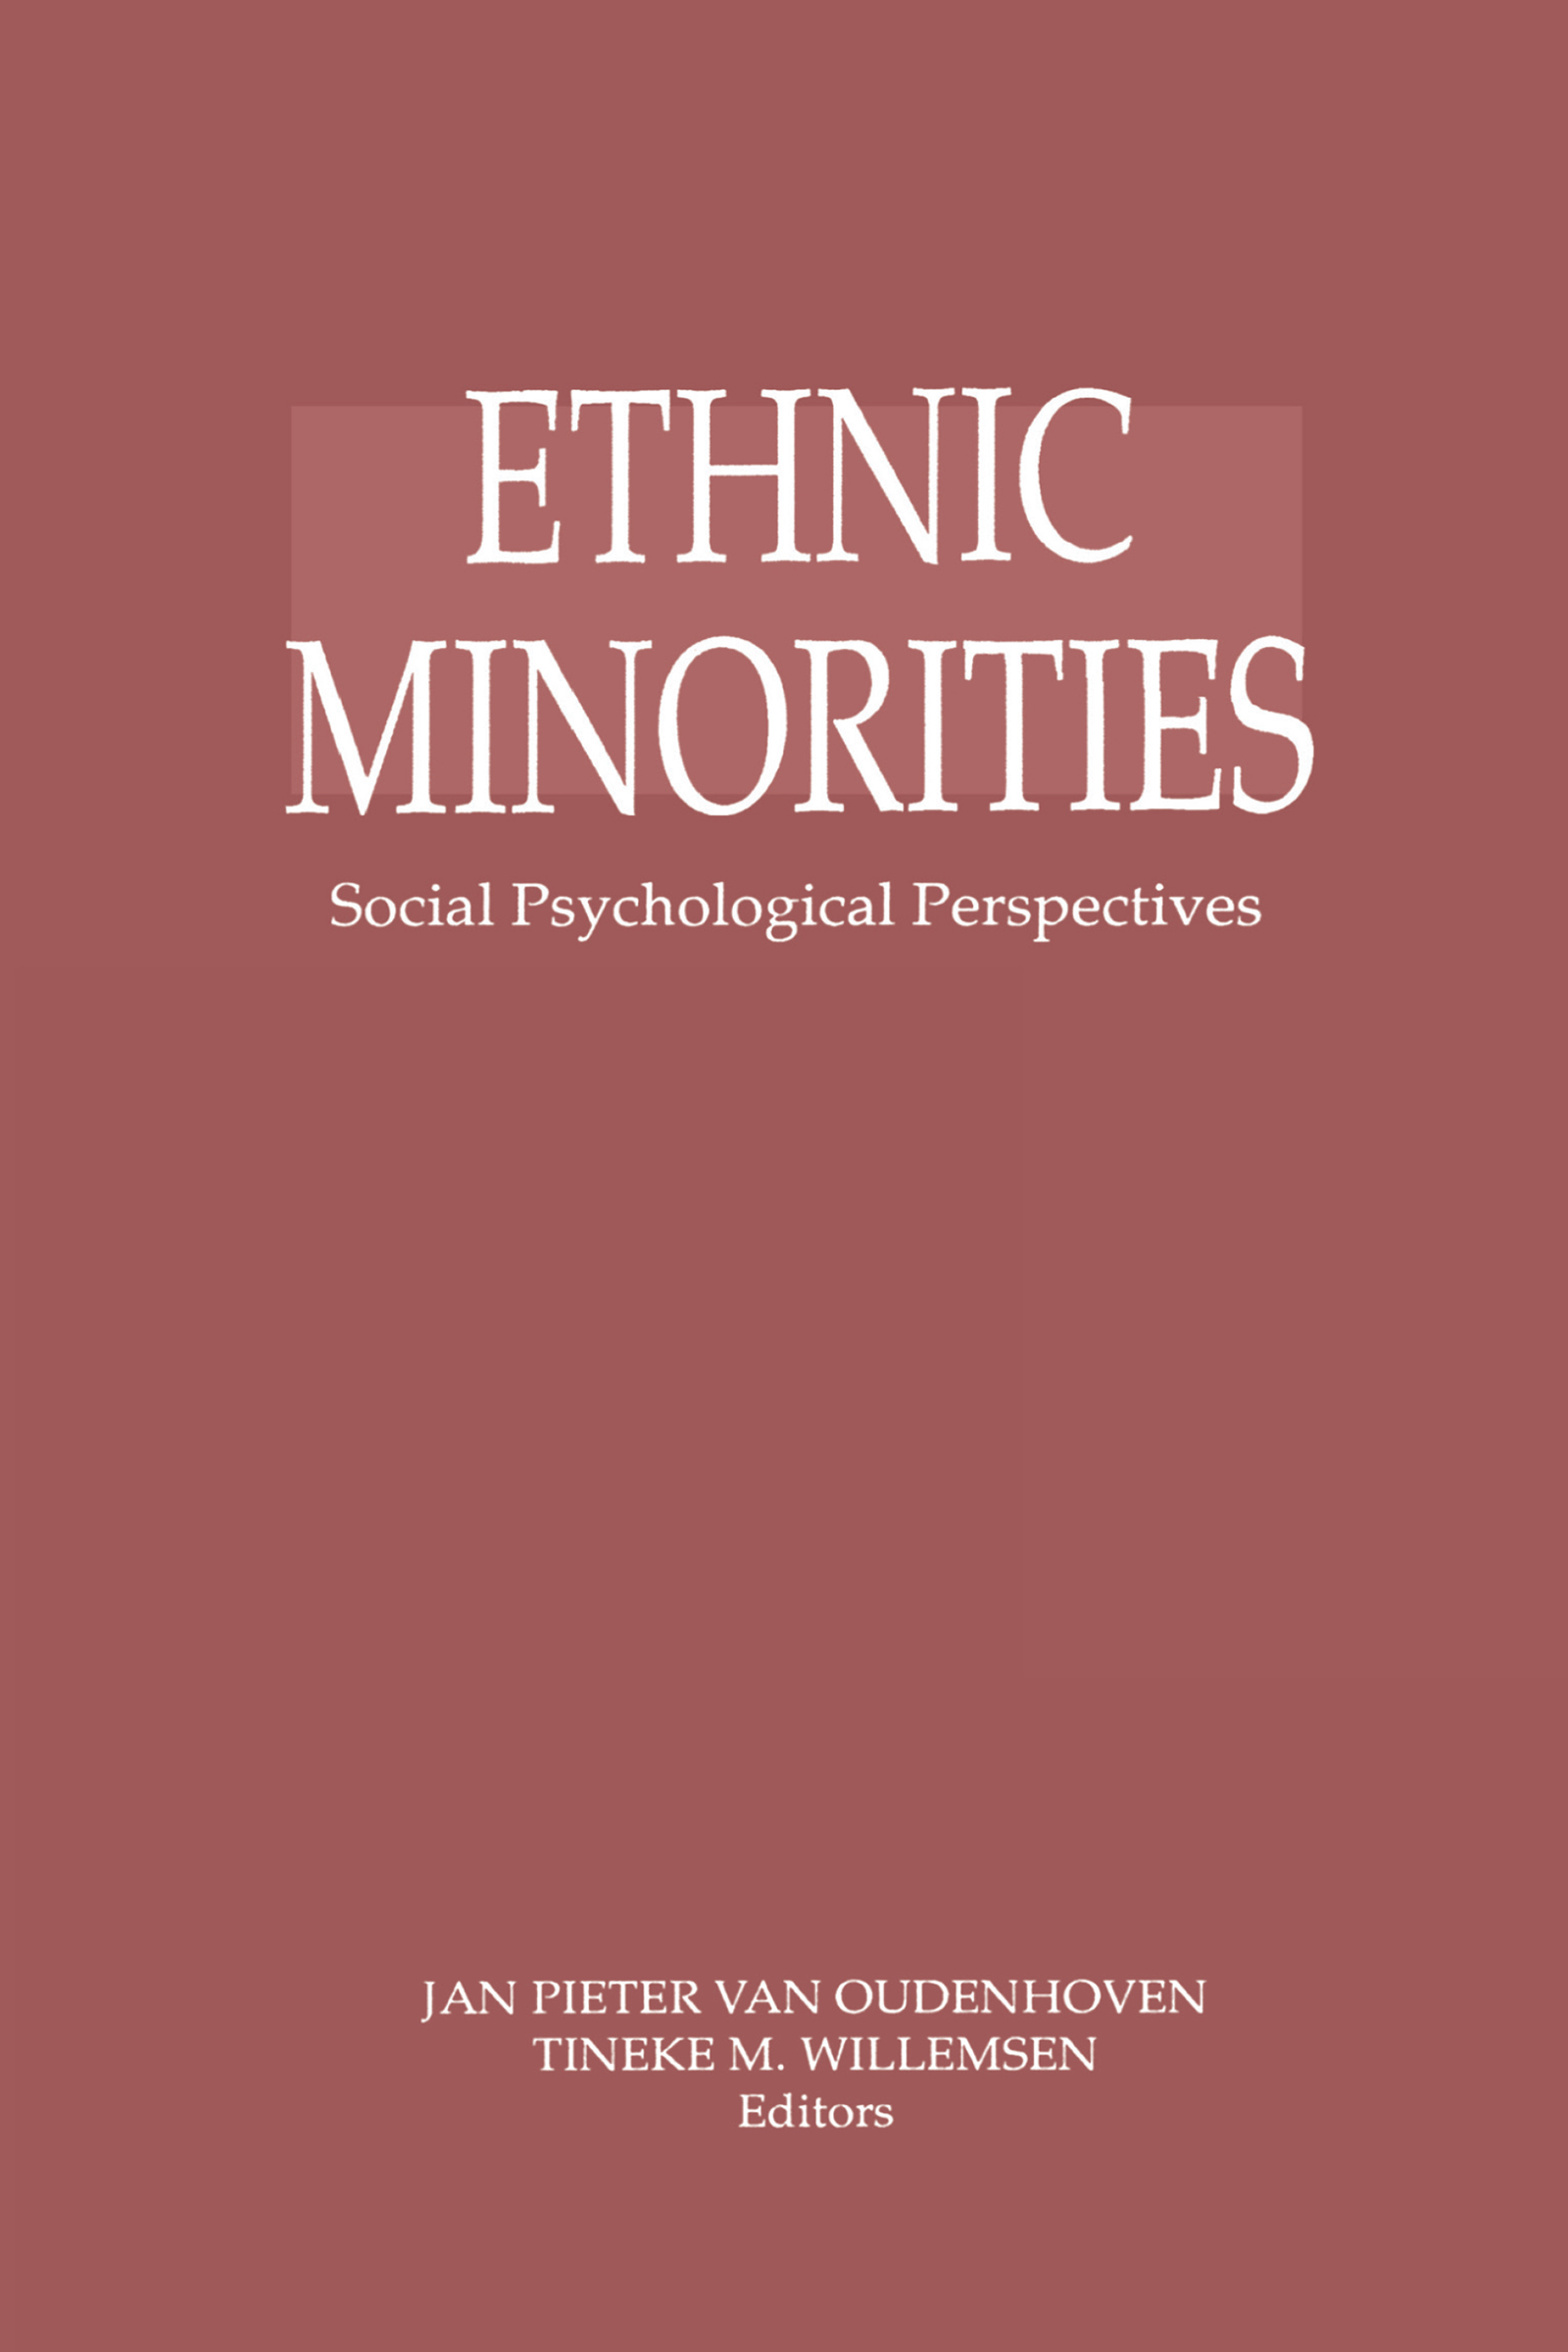 Intergroup Attribution: Some Implications for the Study of Ethnic Prejudice*